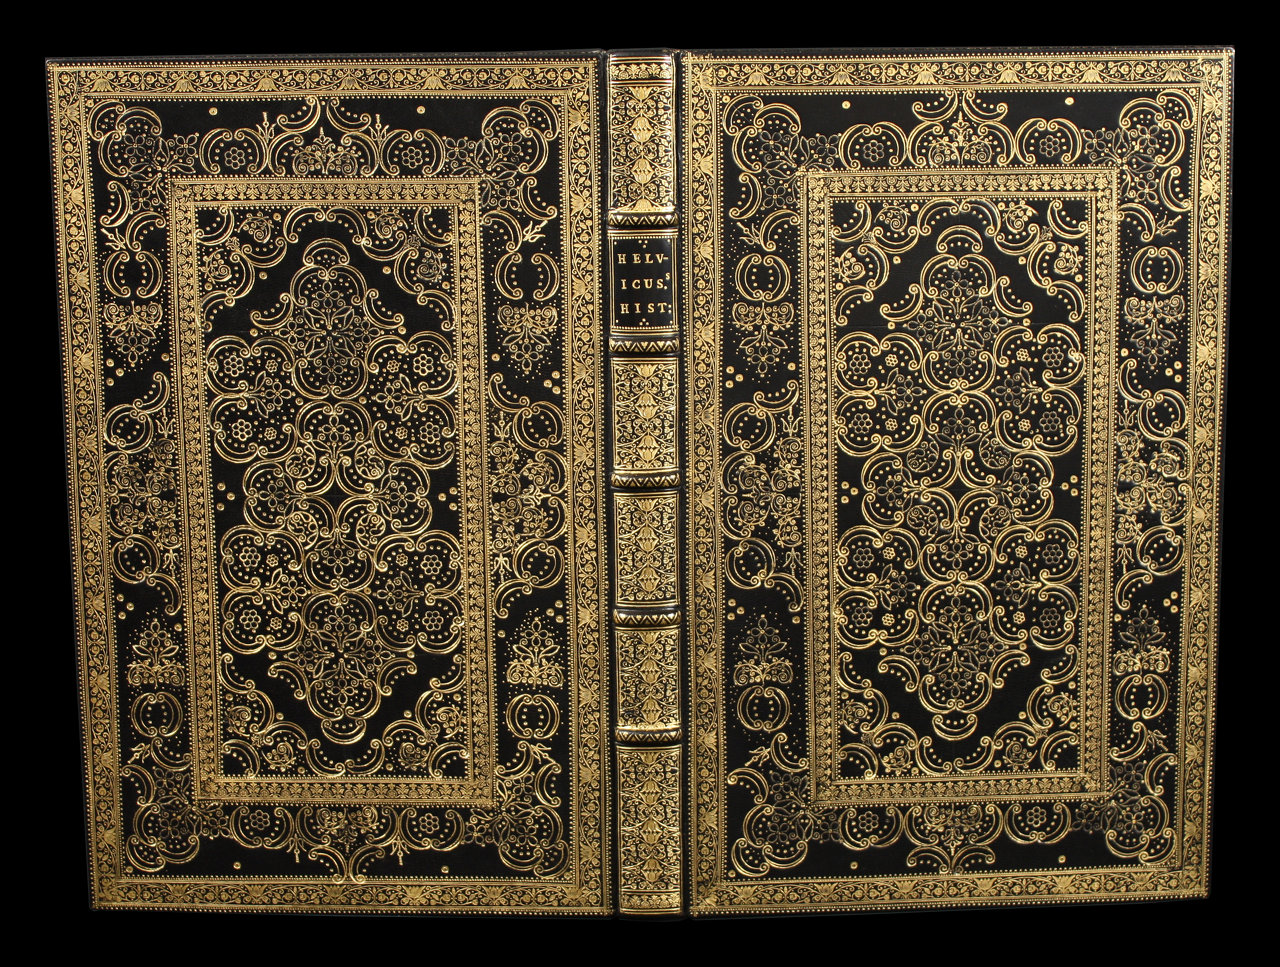 William Nott 'Restoration' Binding